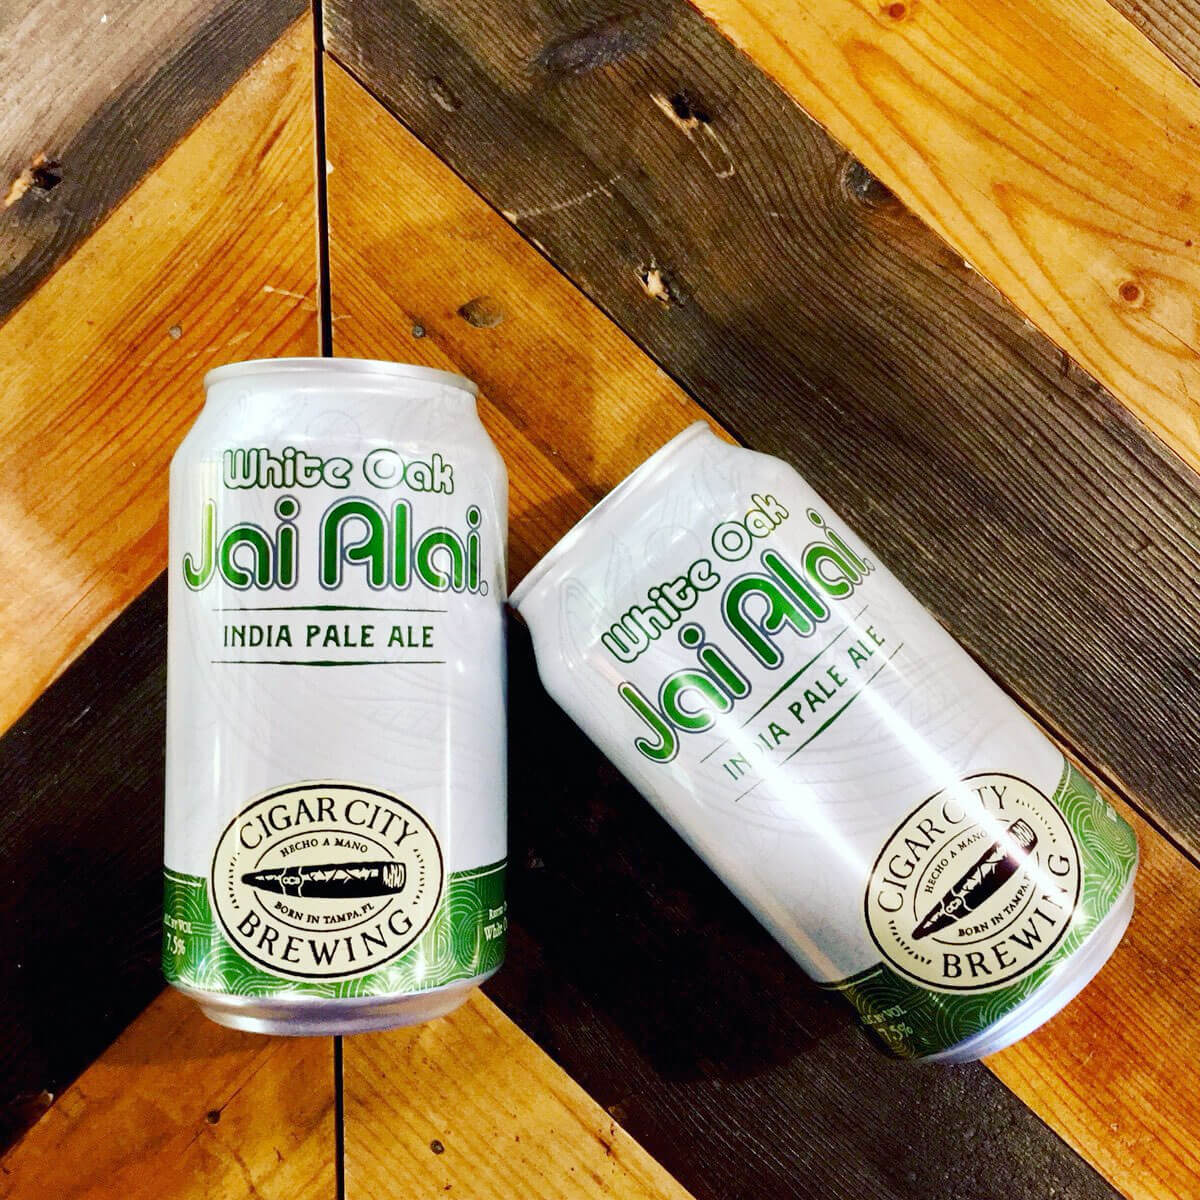 12 oz. cans of the White Oak Jai Alai by Cigar City Brewing